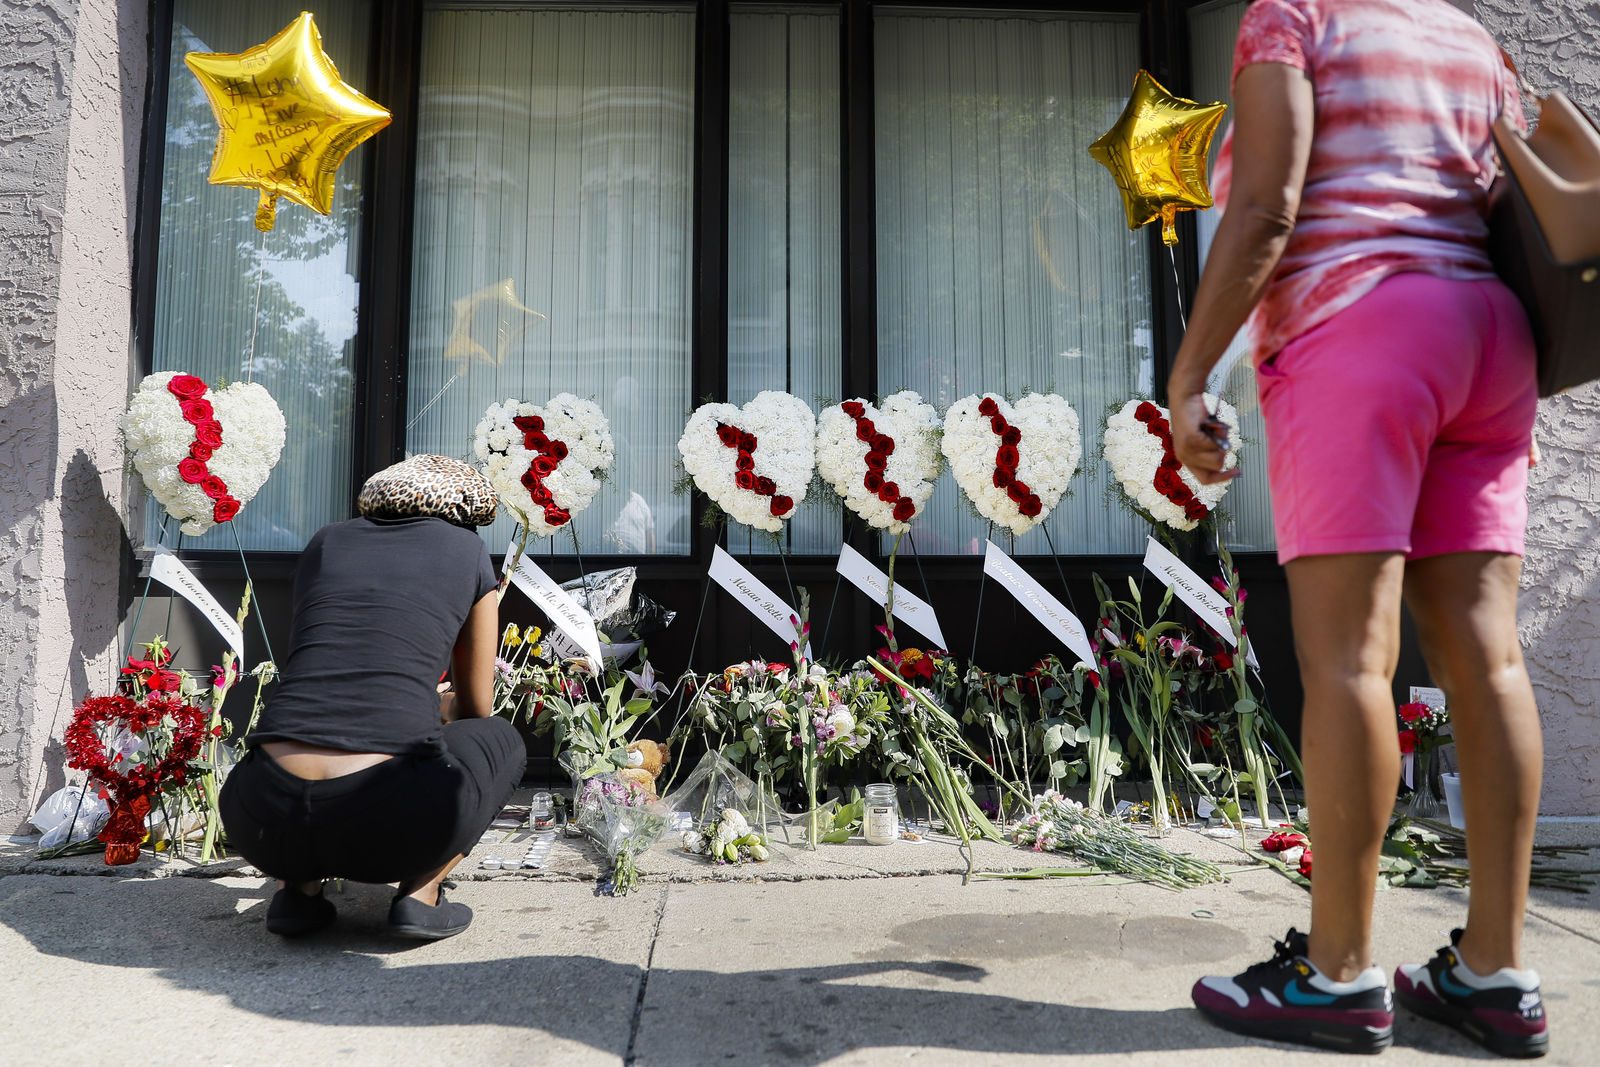 Mourners pause at a makeshift memorial Tuesday, Aug. 6, 2019, for the slain and injured in the Oregon District after a mass shooting that occurred early Sunday morning, in Dayton. (AP Photo/John Minchillo)